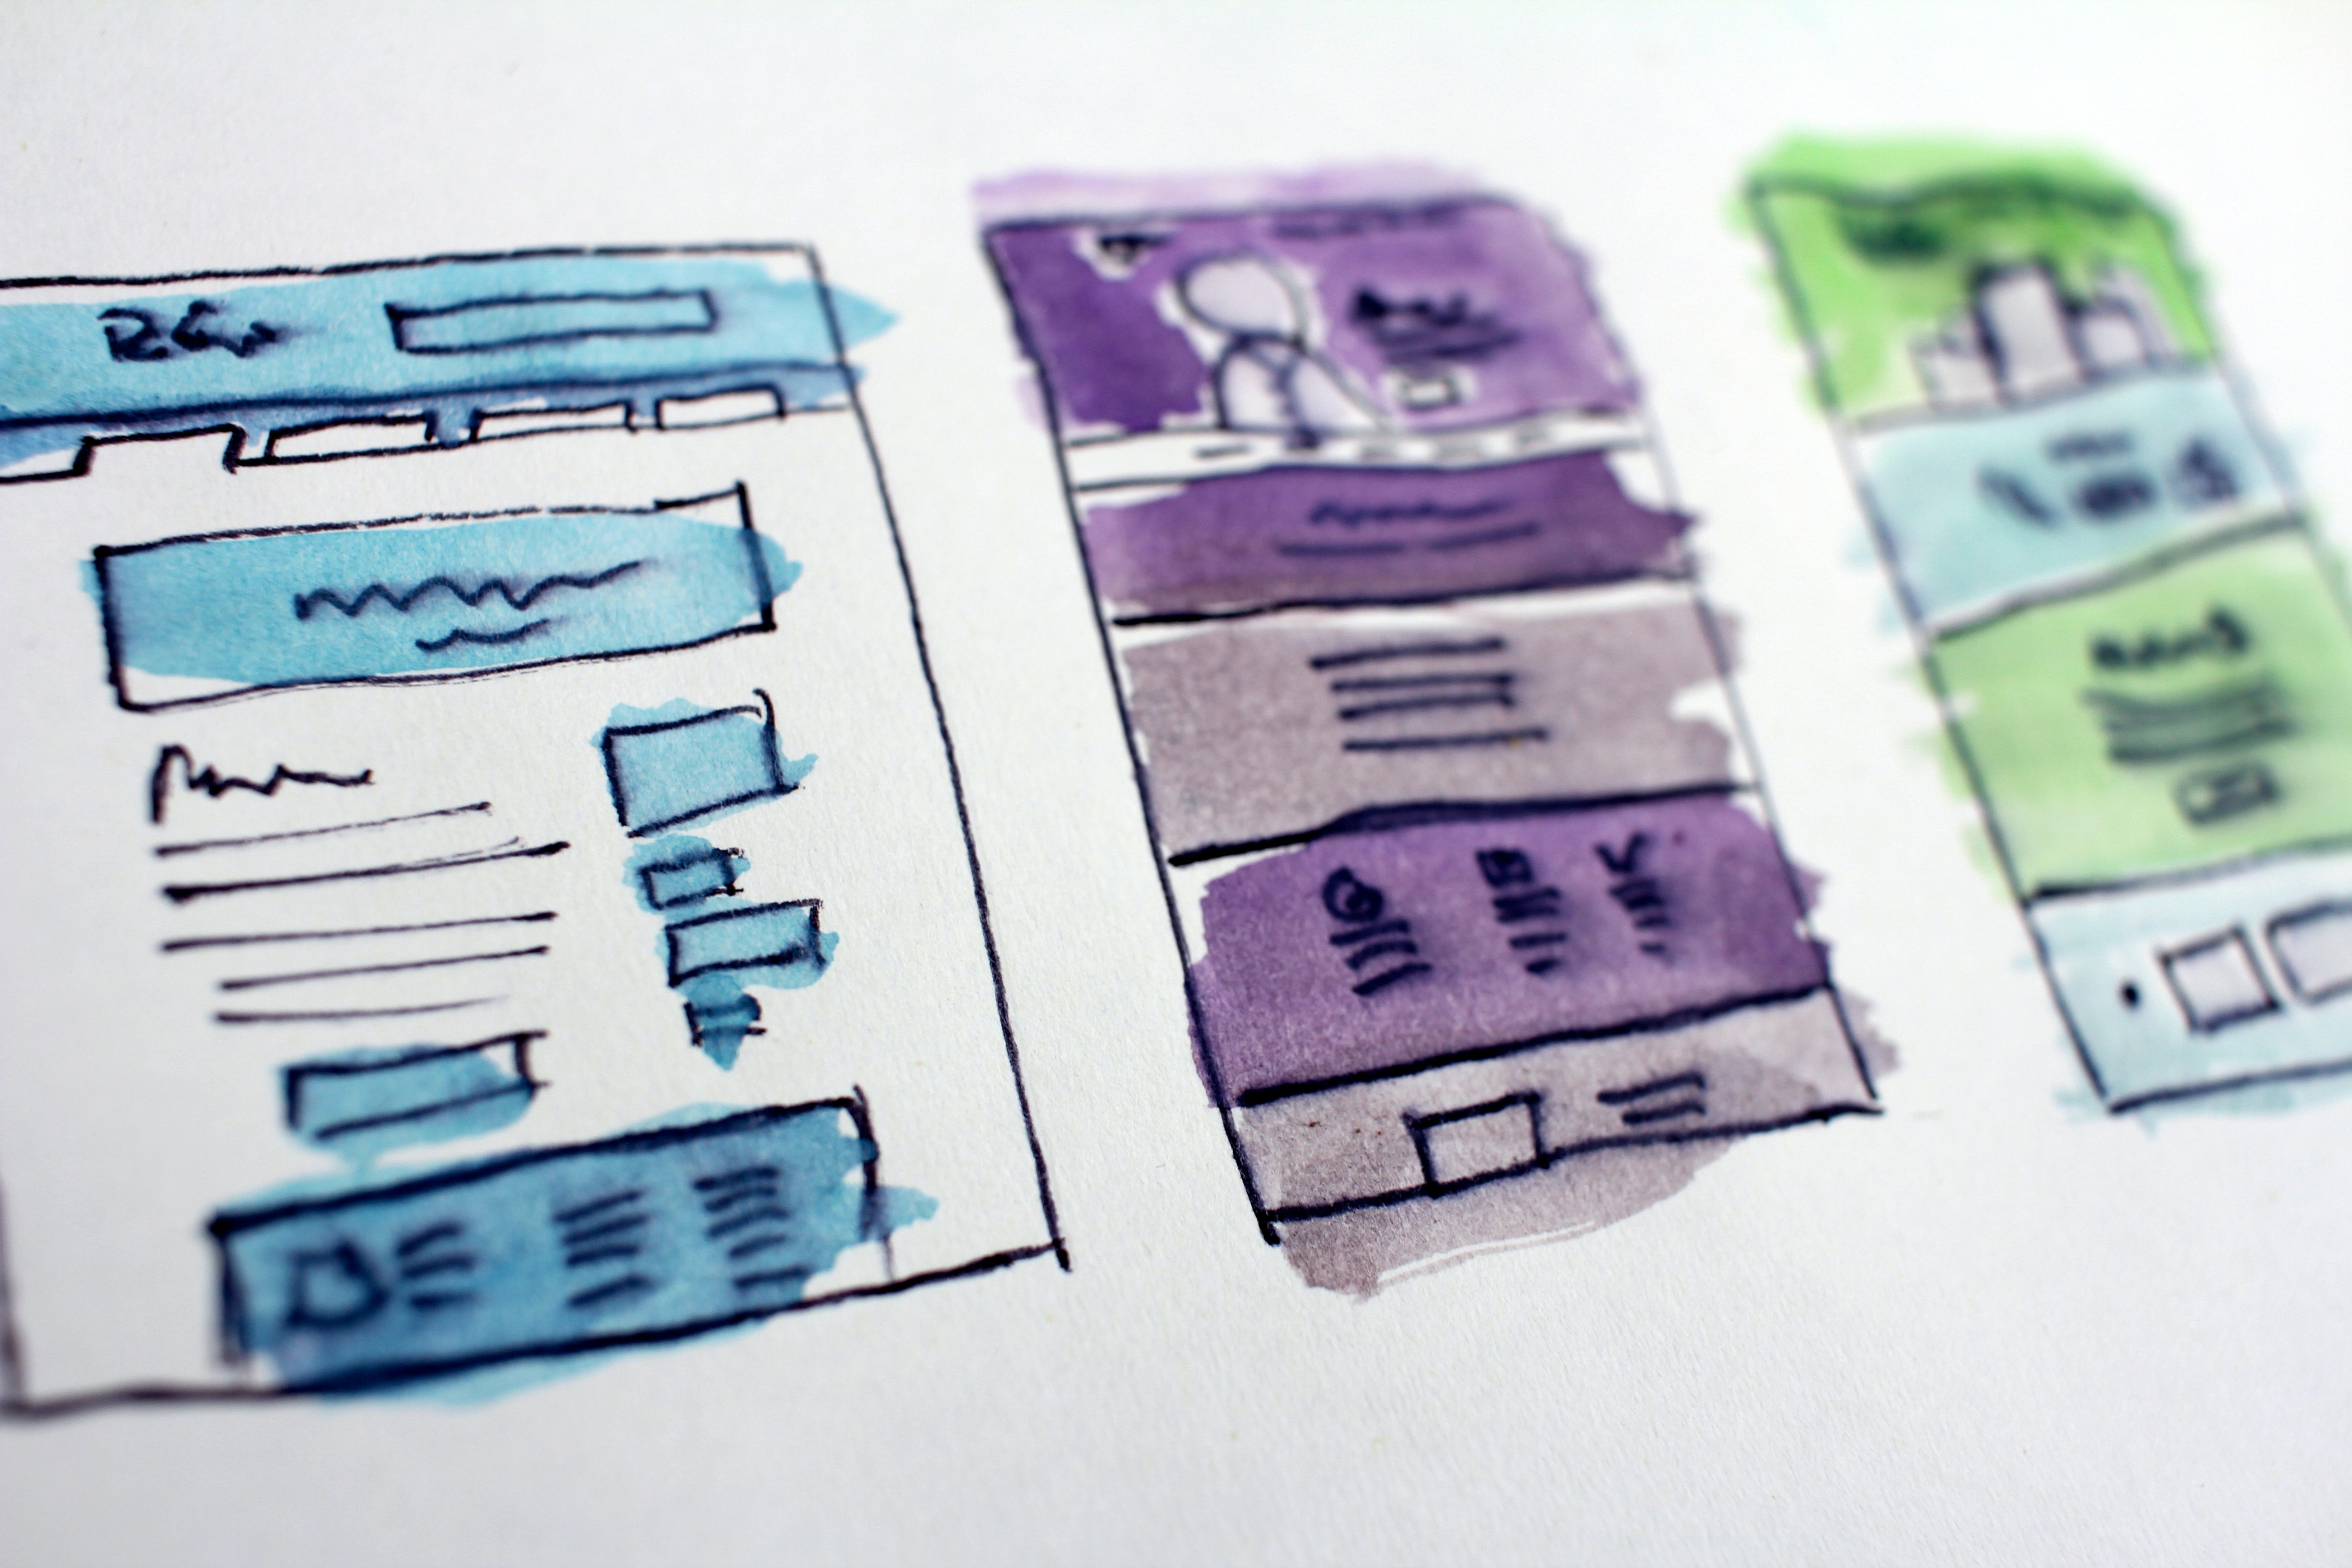 how to merge two or more websites into one